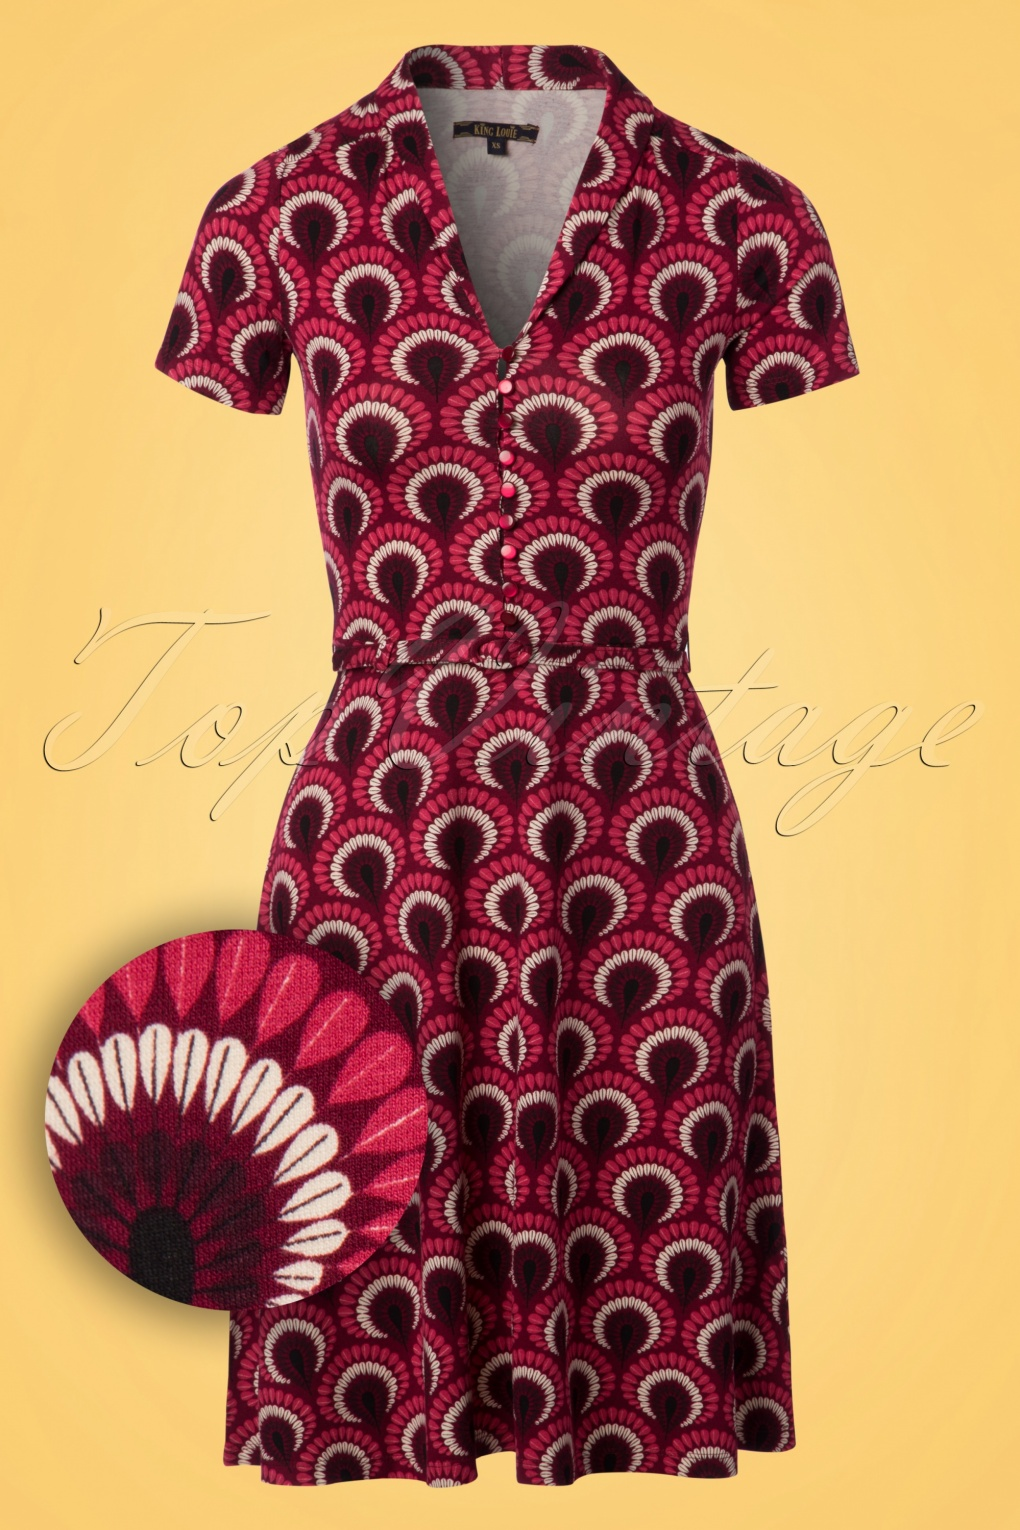 1960s Mad Men Dresses and Clothing Styles 60s Emmy Peacock Dress in Beaujolais Red £88.52 AT vintagedancer.com